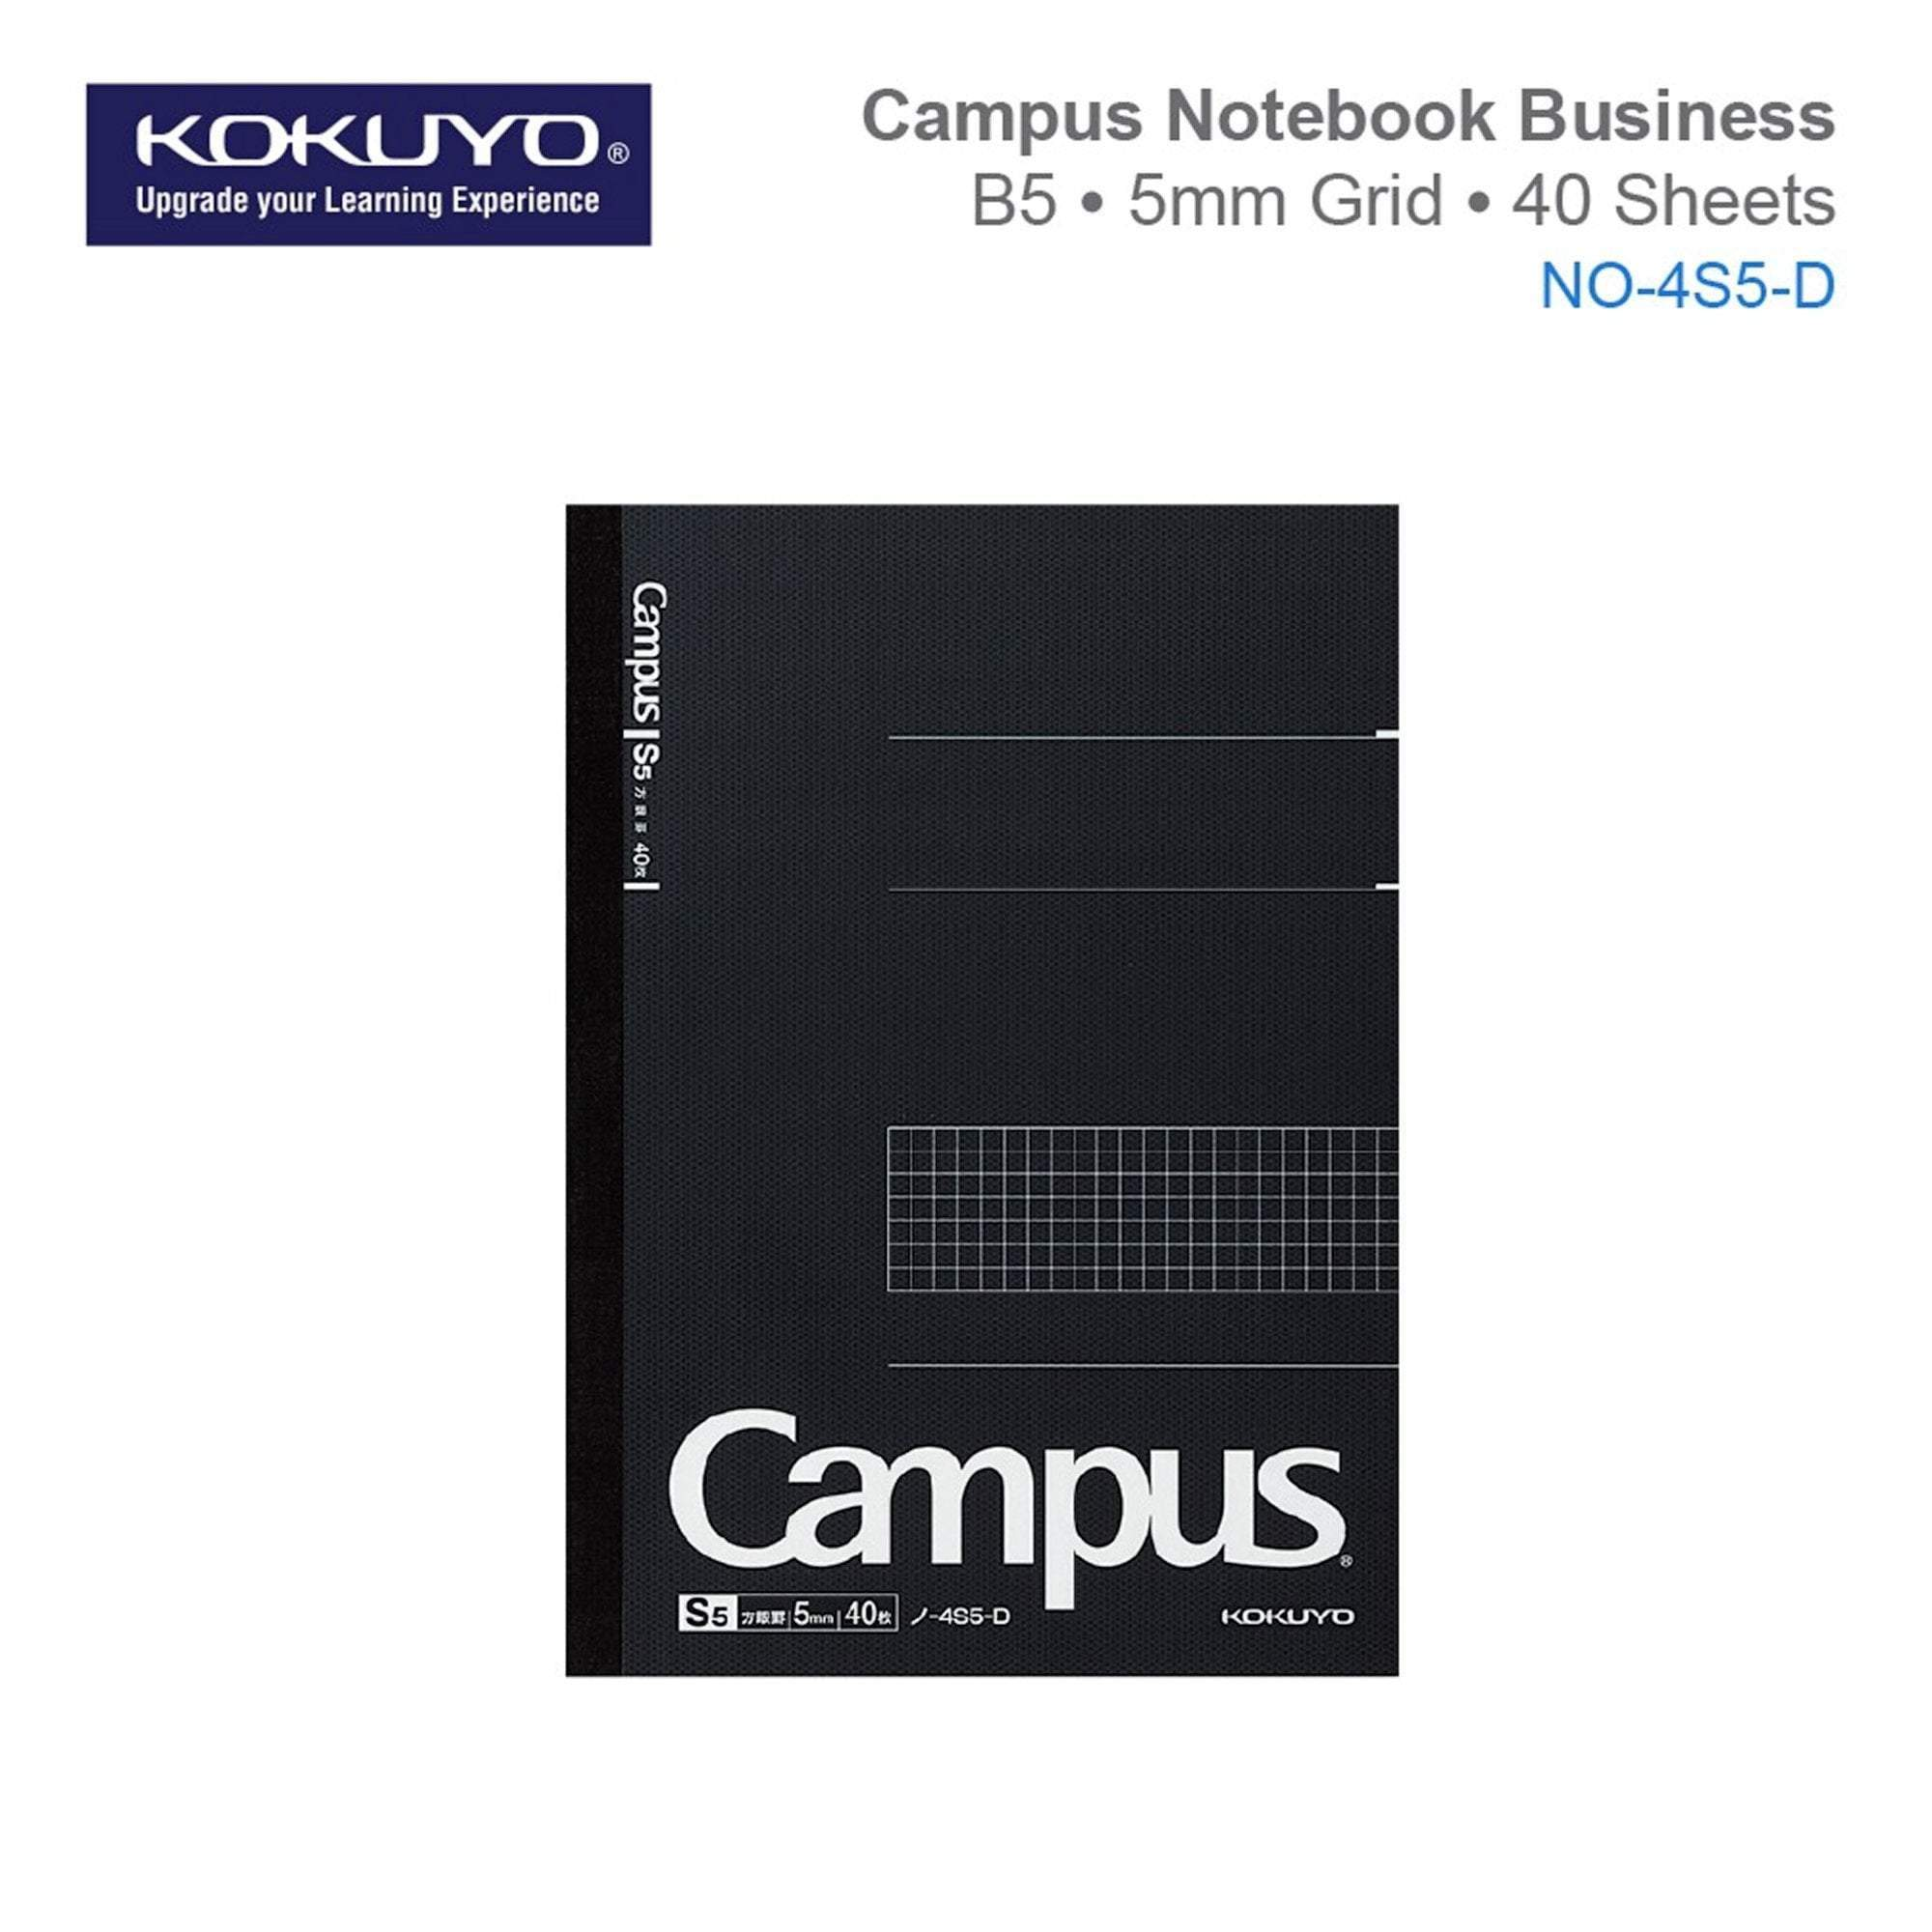 Kokuyo Campus Notebook Black 5mm Grid | Semi B5 40 Sheet - The Stationery Life!